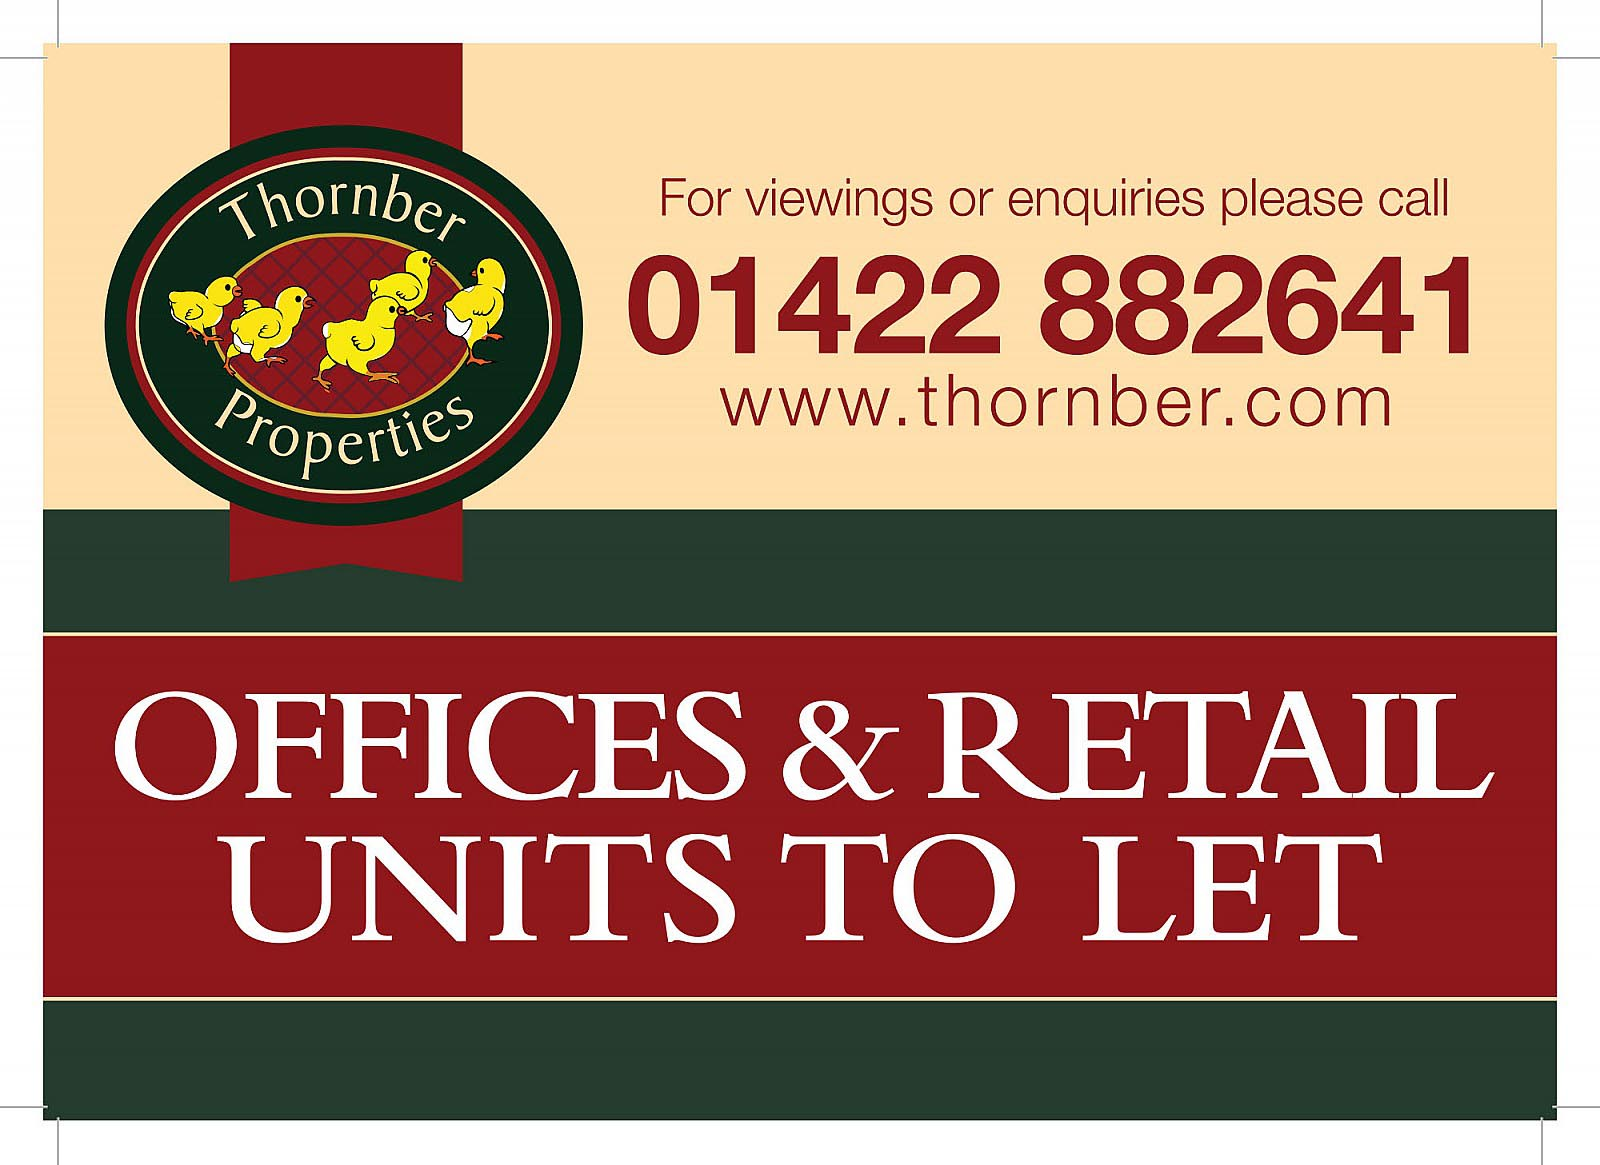 Thornber property - Signage